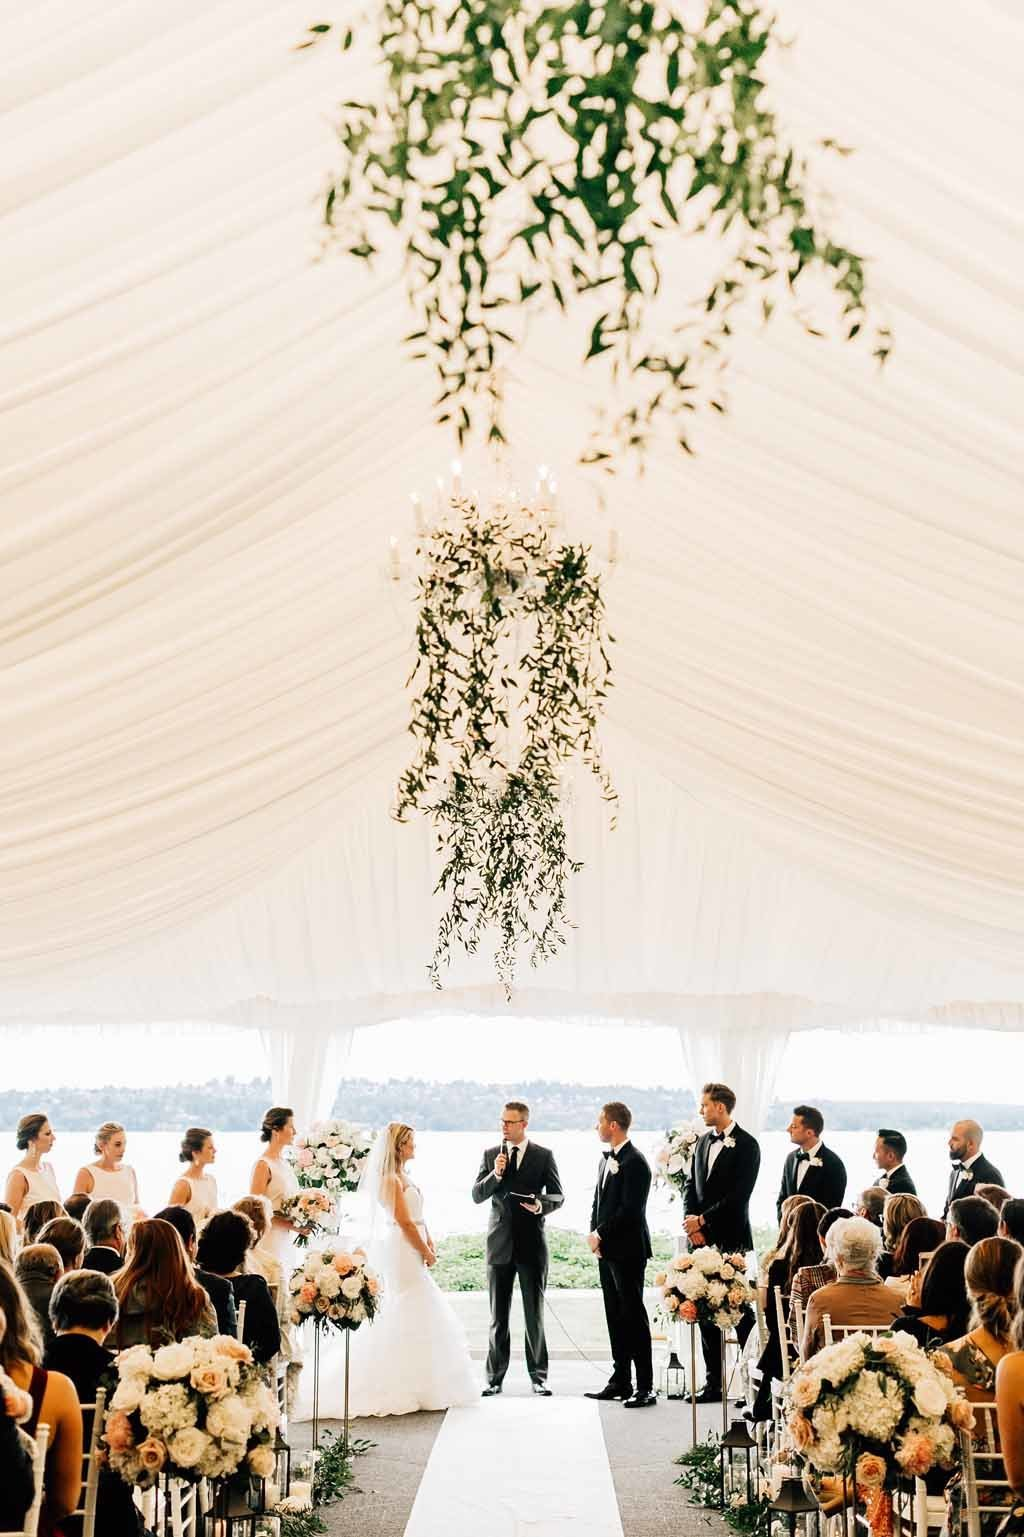 Greenery covered chandeliers suspended above the aisle for the tent wedding ceremony.